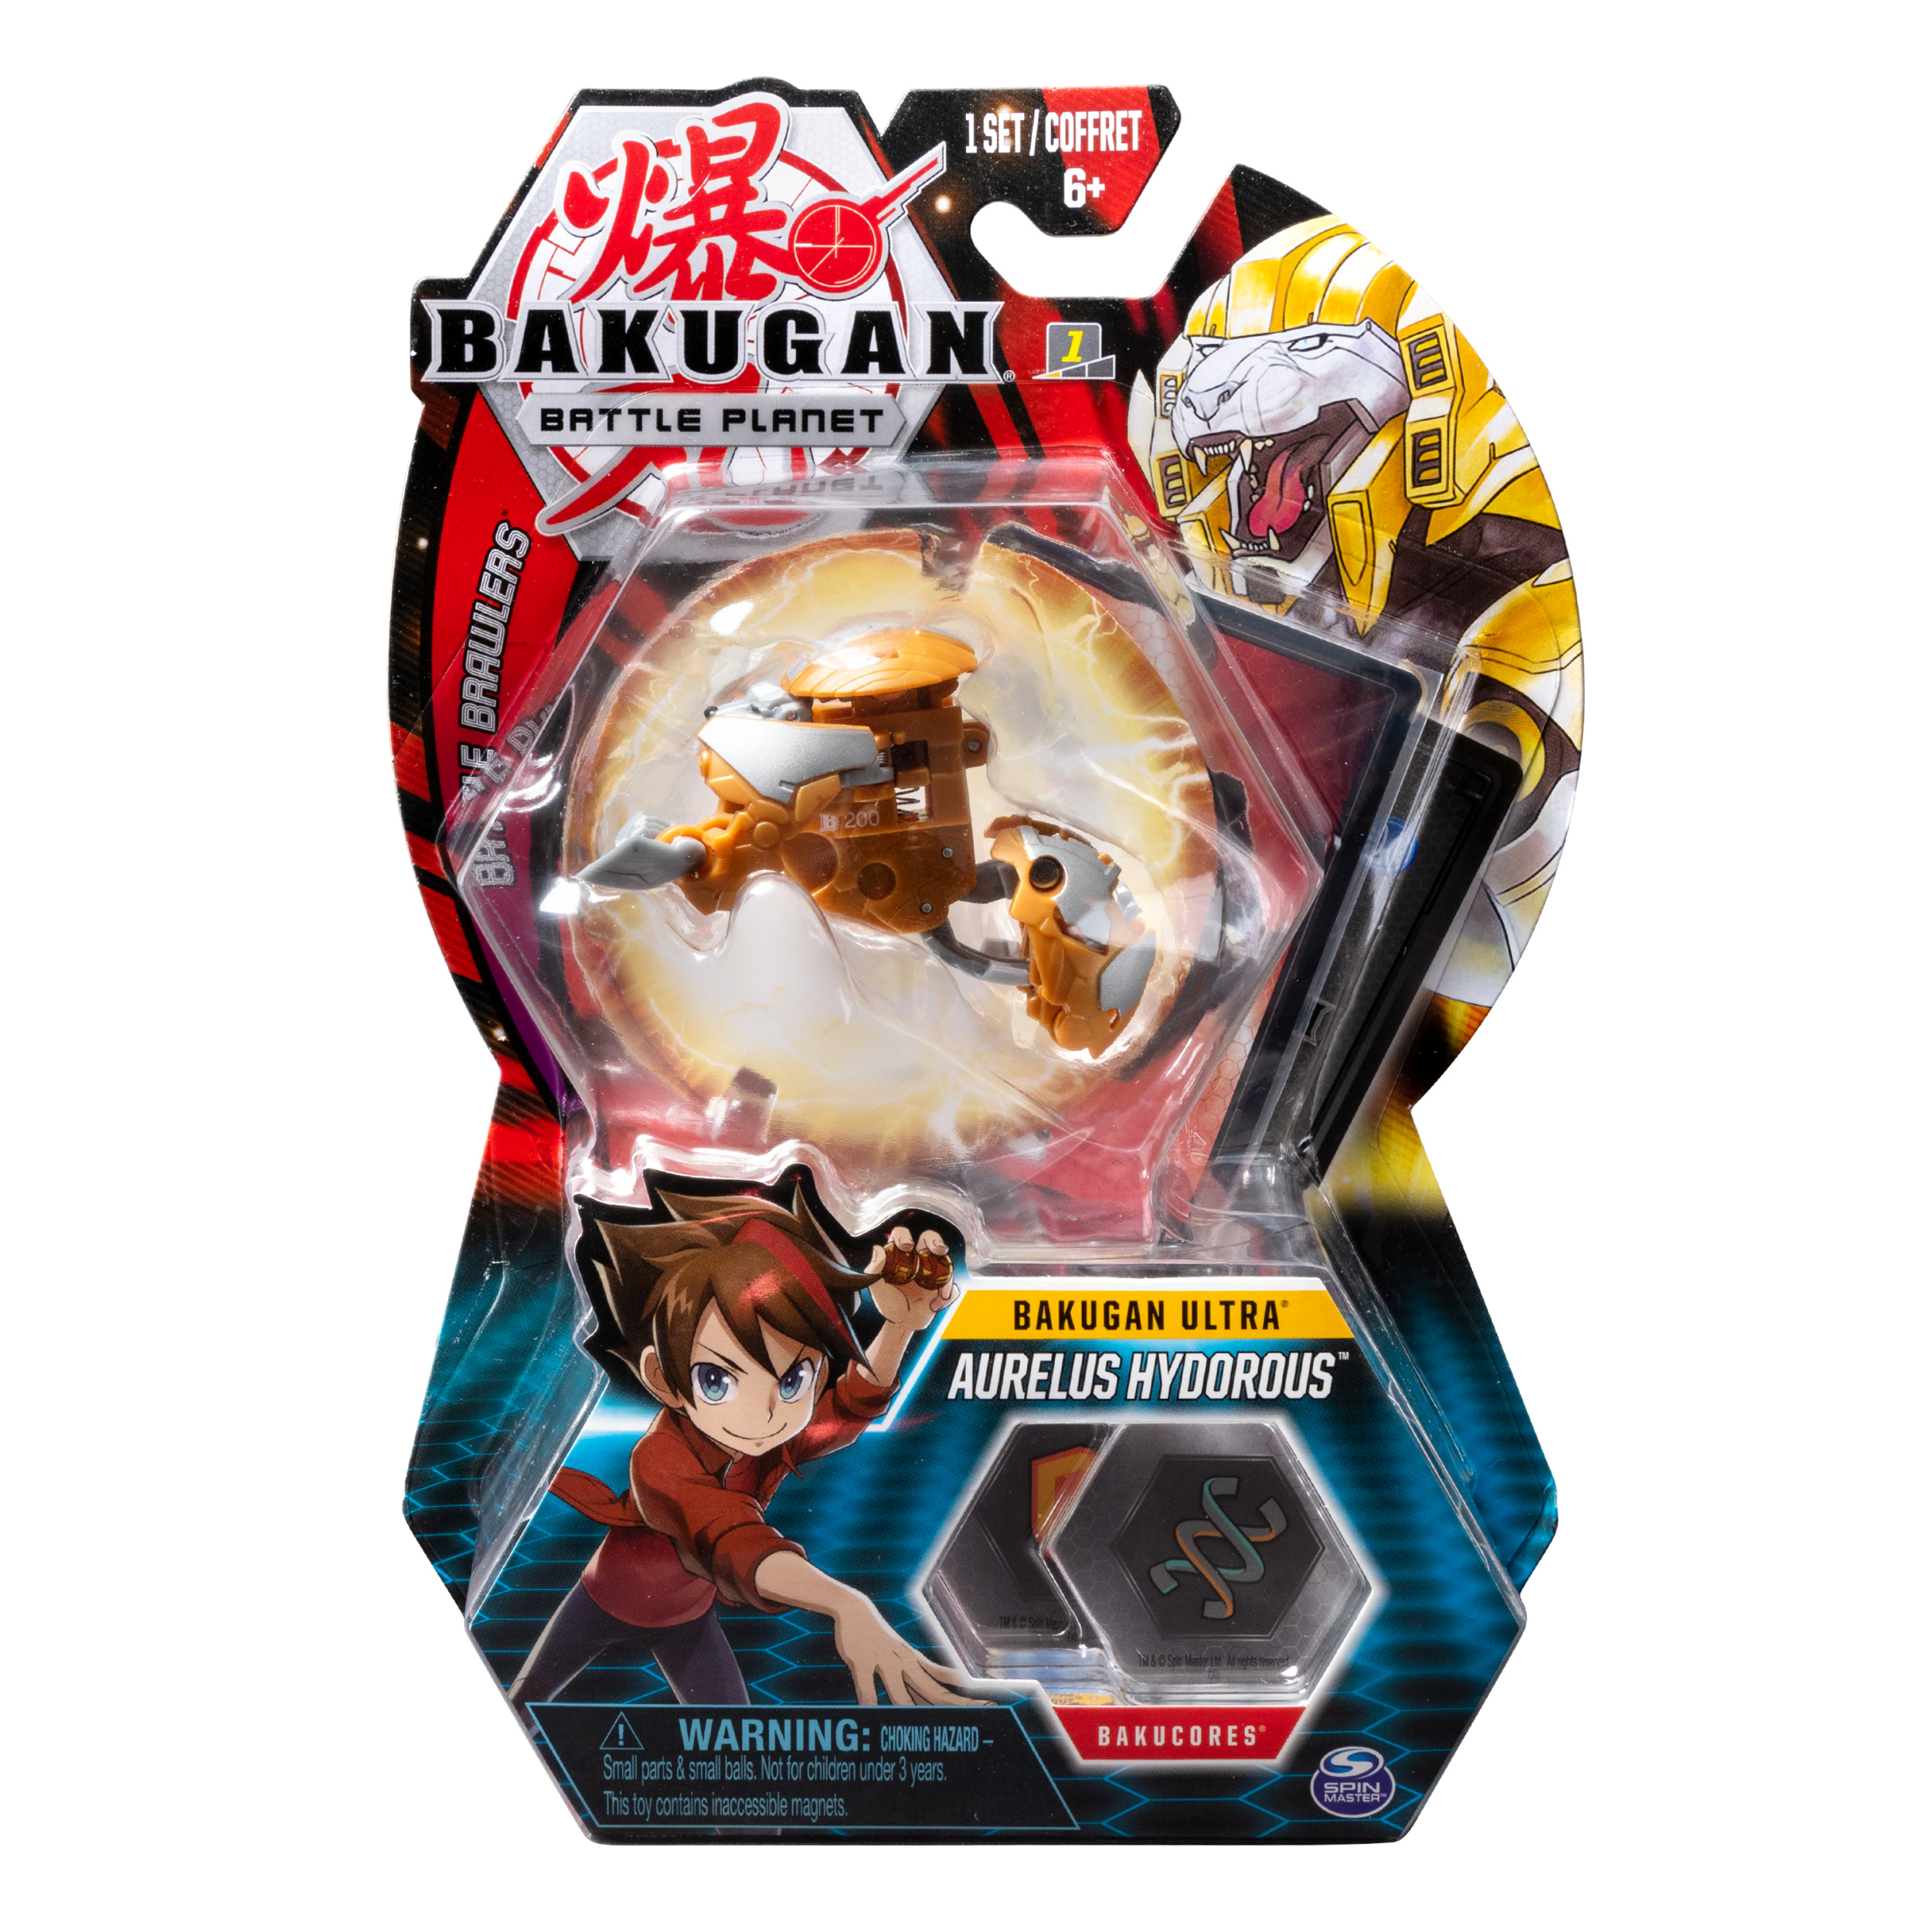 Bakugan Ultra, Aurelus Hydorous, 3-inch Collectible Action Figure and Trading Card, for Ages 6 and Up